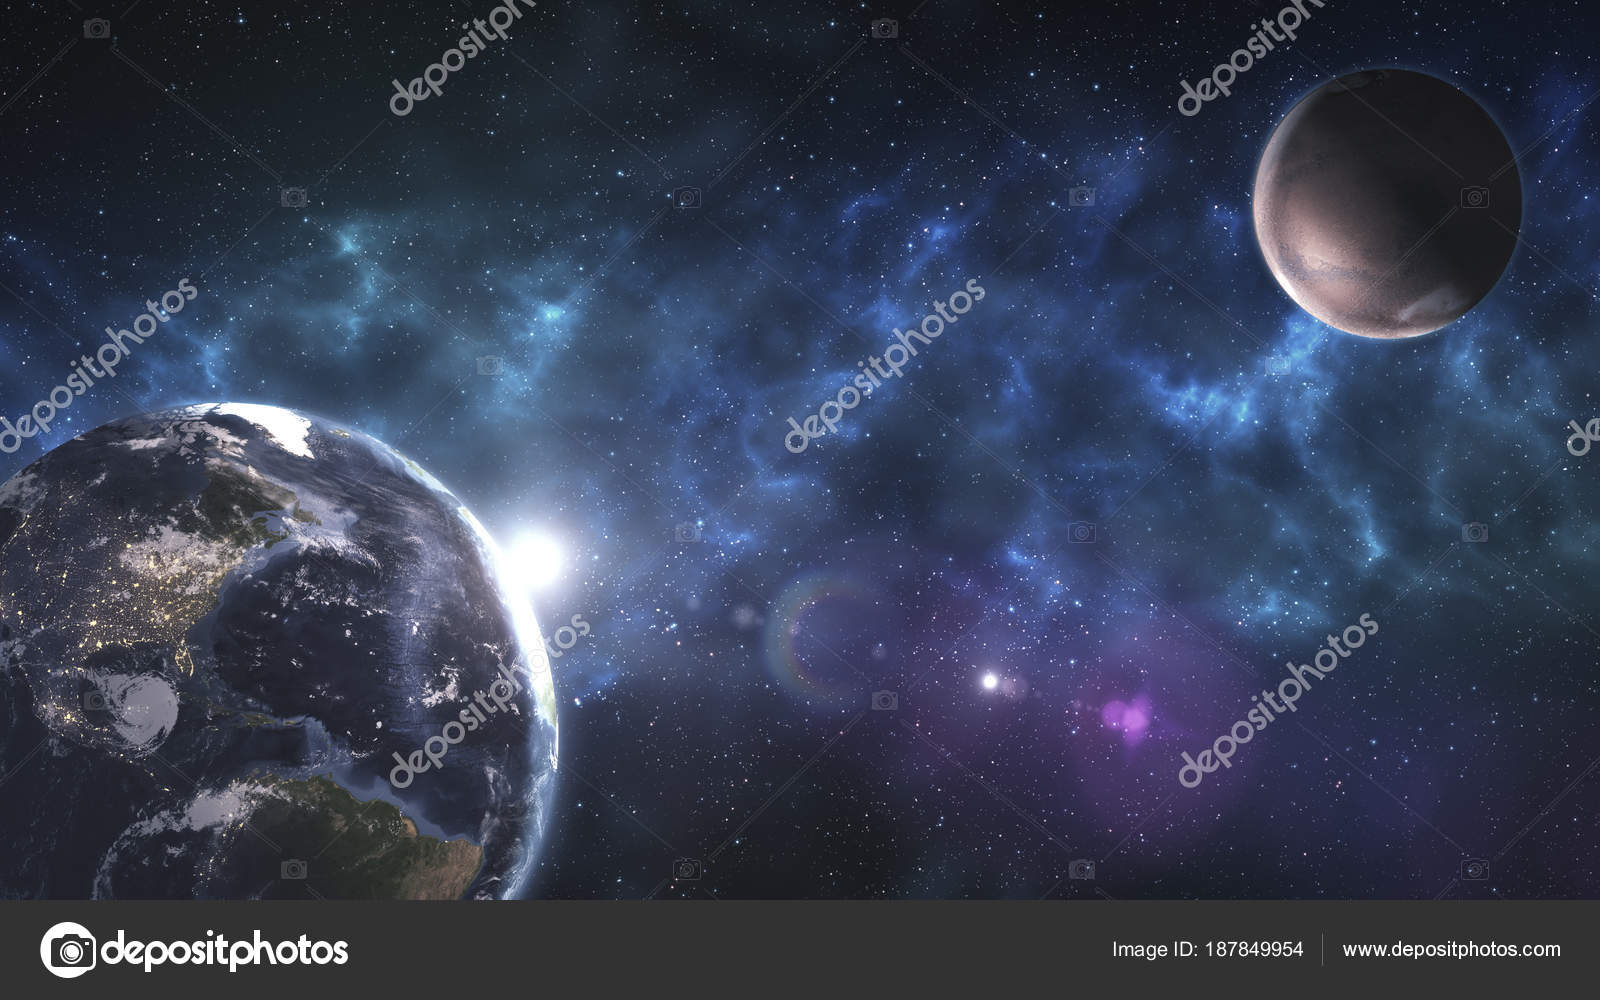 Space Fantasy Art Wallpaper Space Art Incredibly Beautiful Science Fiction Wallpaper Endless Universe Elements Of This Image Furnished By Nasa Stock Photo C Unitxi 187849954